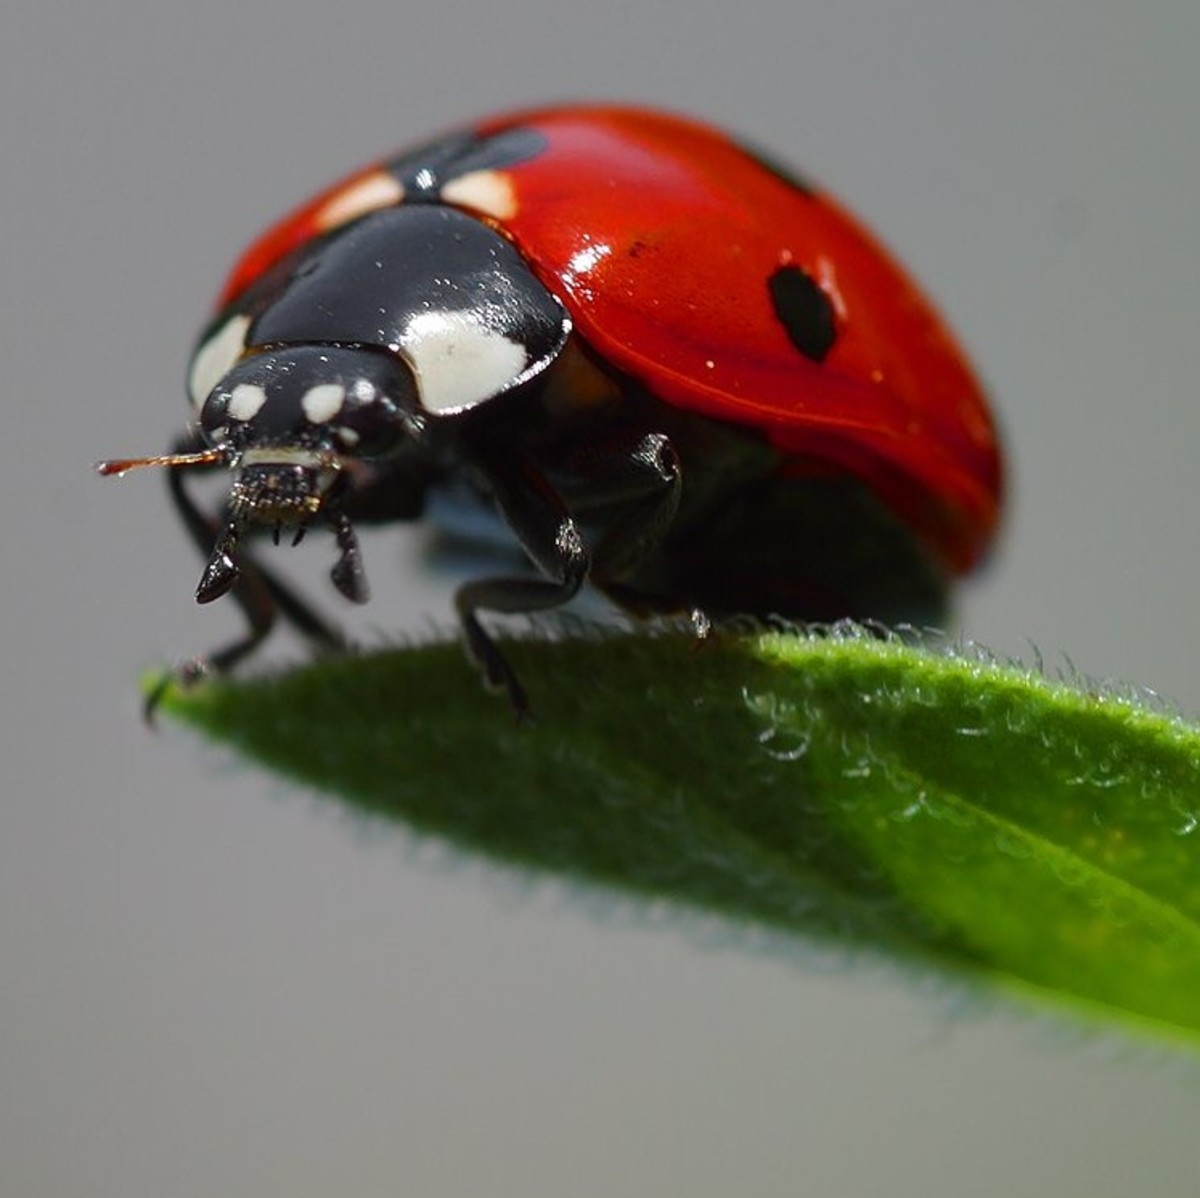 Ladybugs love to feast on aphids